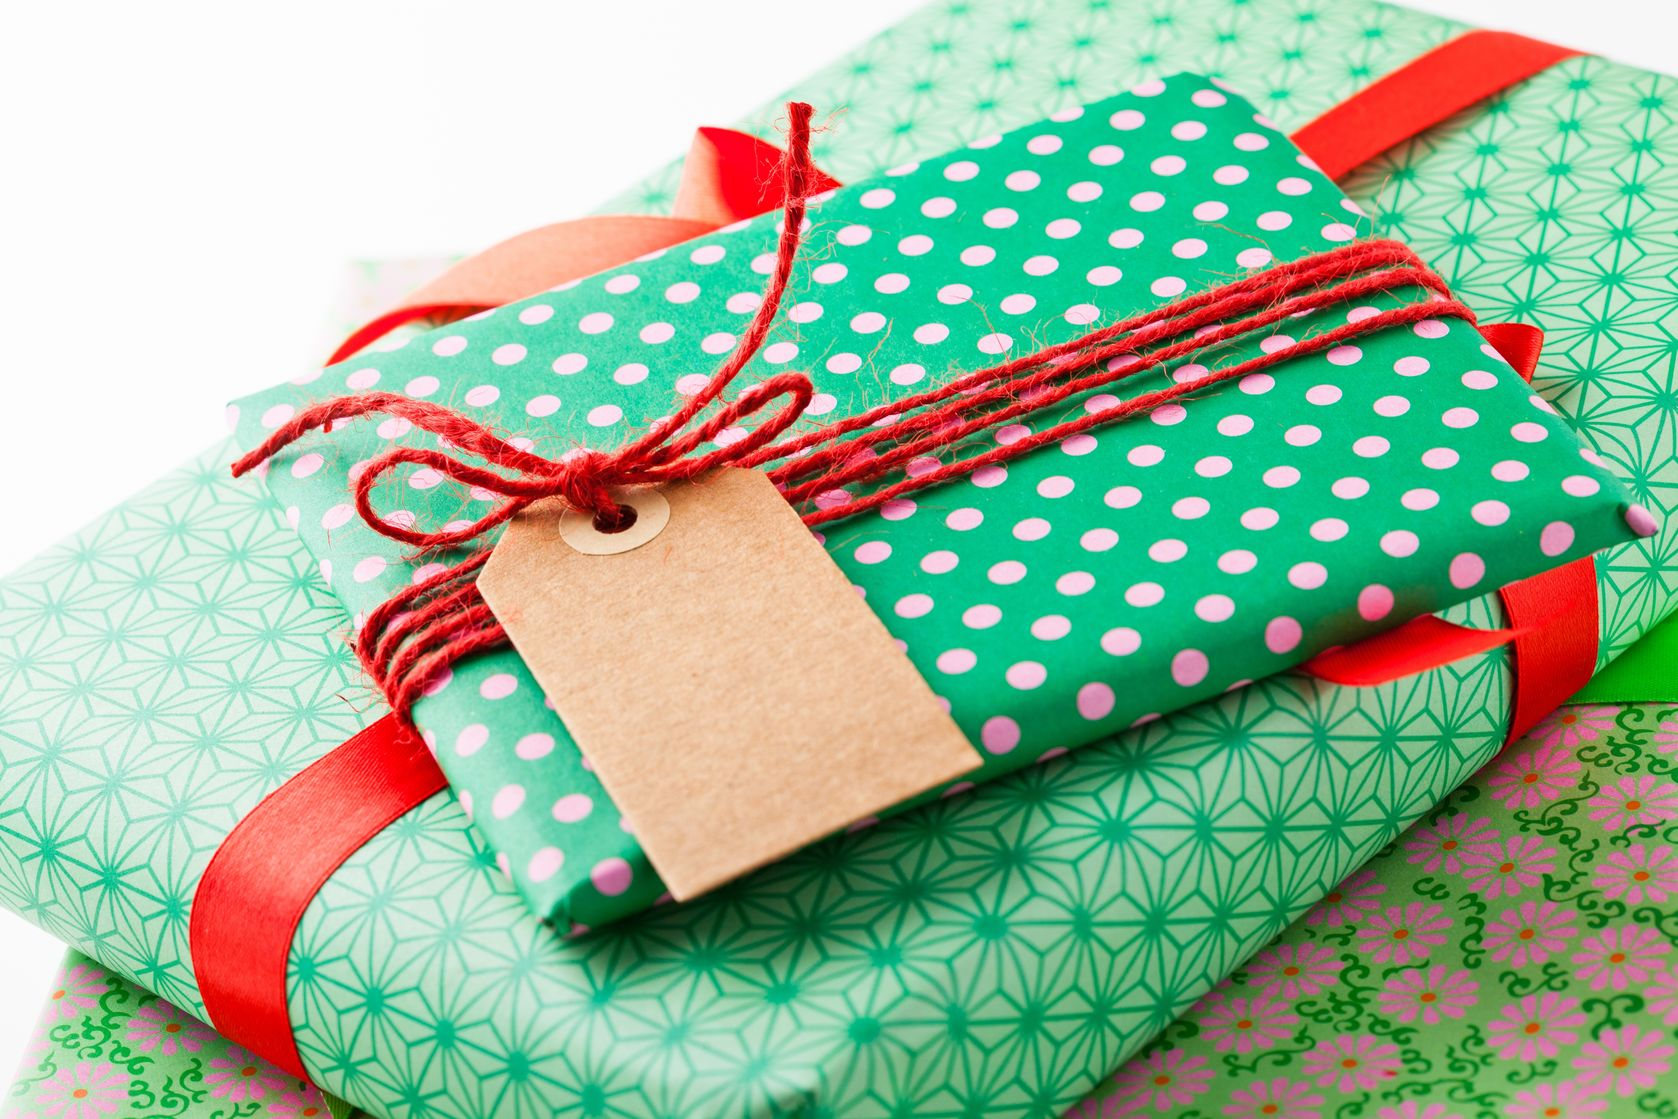 16326817 - close up of wrapped gifts with red ribbon and plain cardboard tag on white background